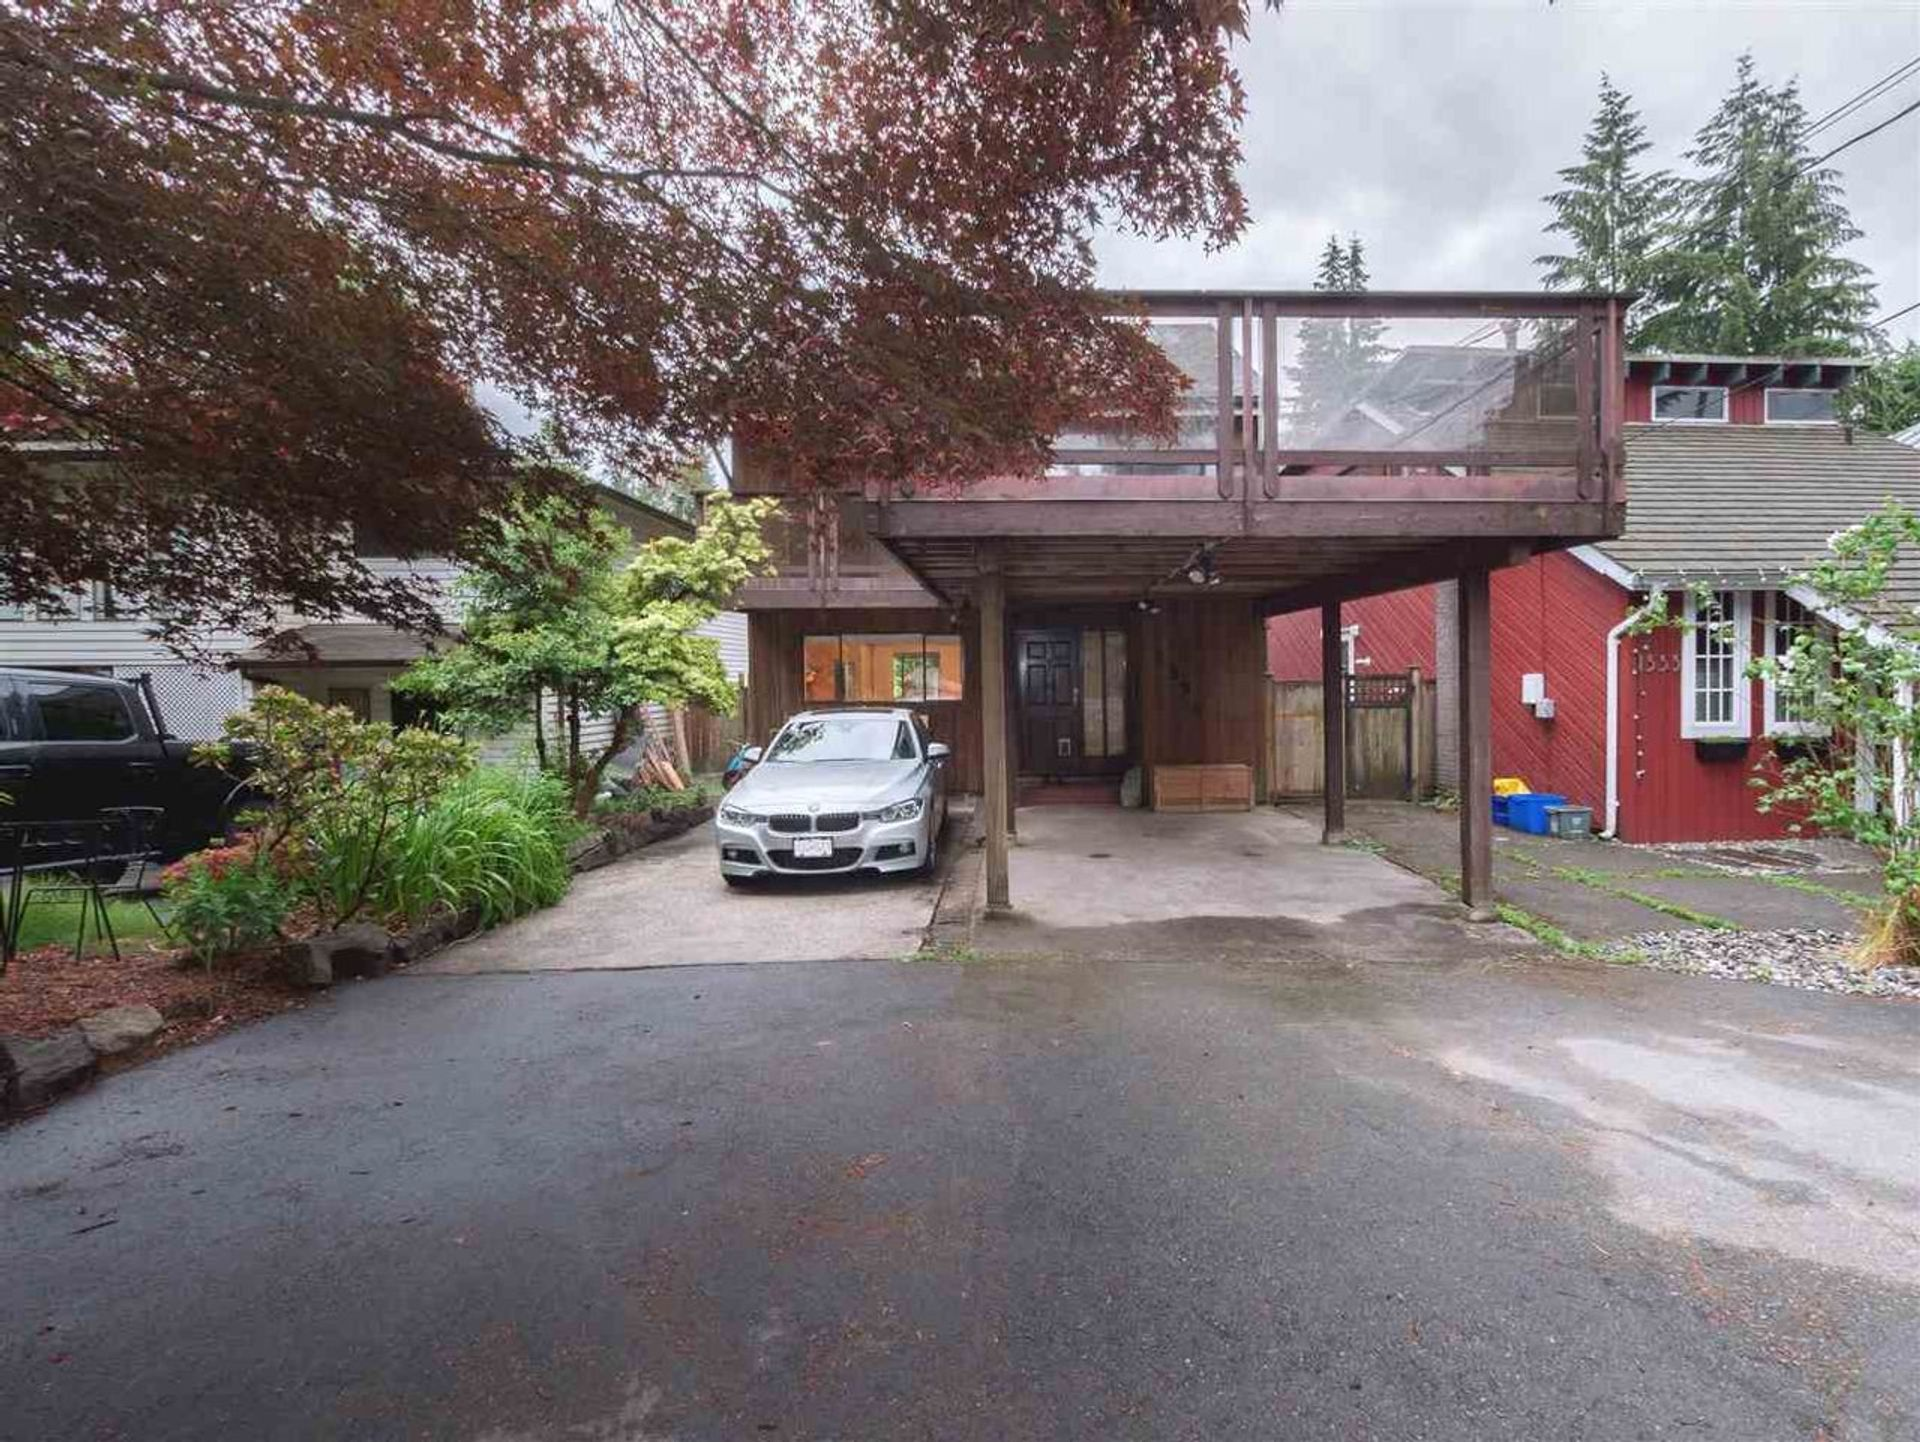 1335-e-8th-street-lynnmour-north-vancouver-02 at 1335 E 8th Street, Lynnmour, North Vancouver